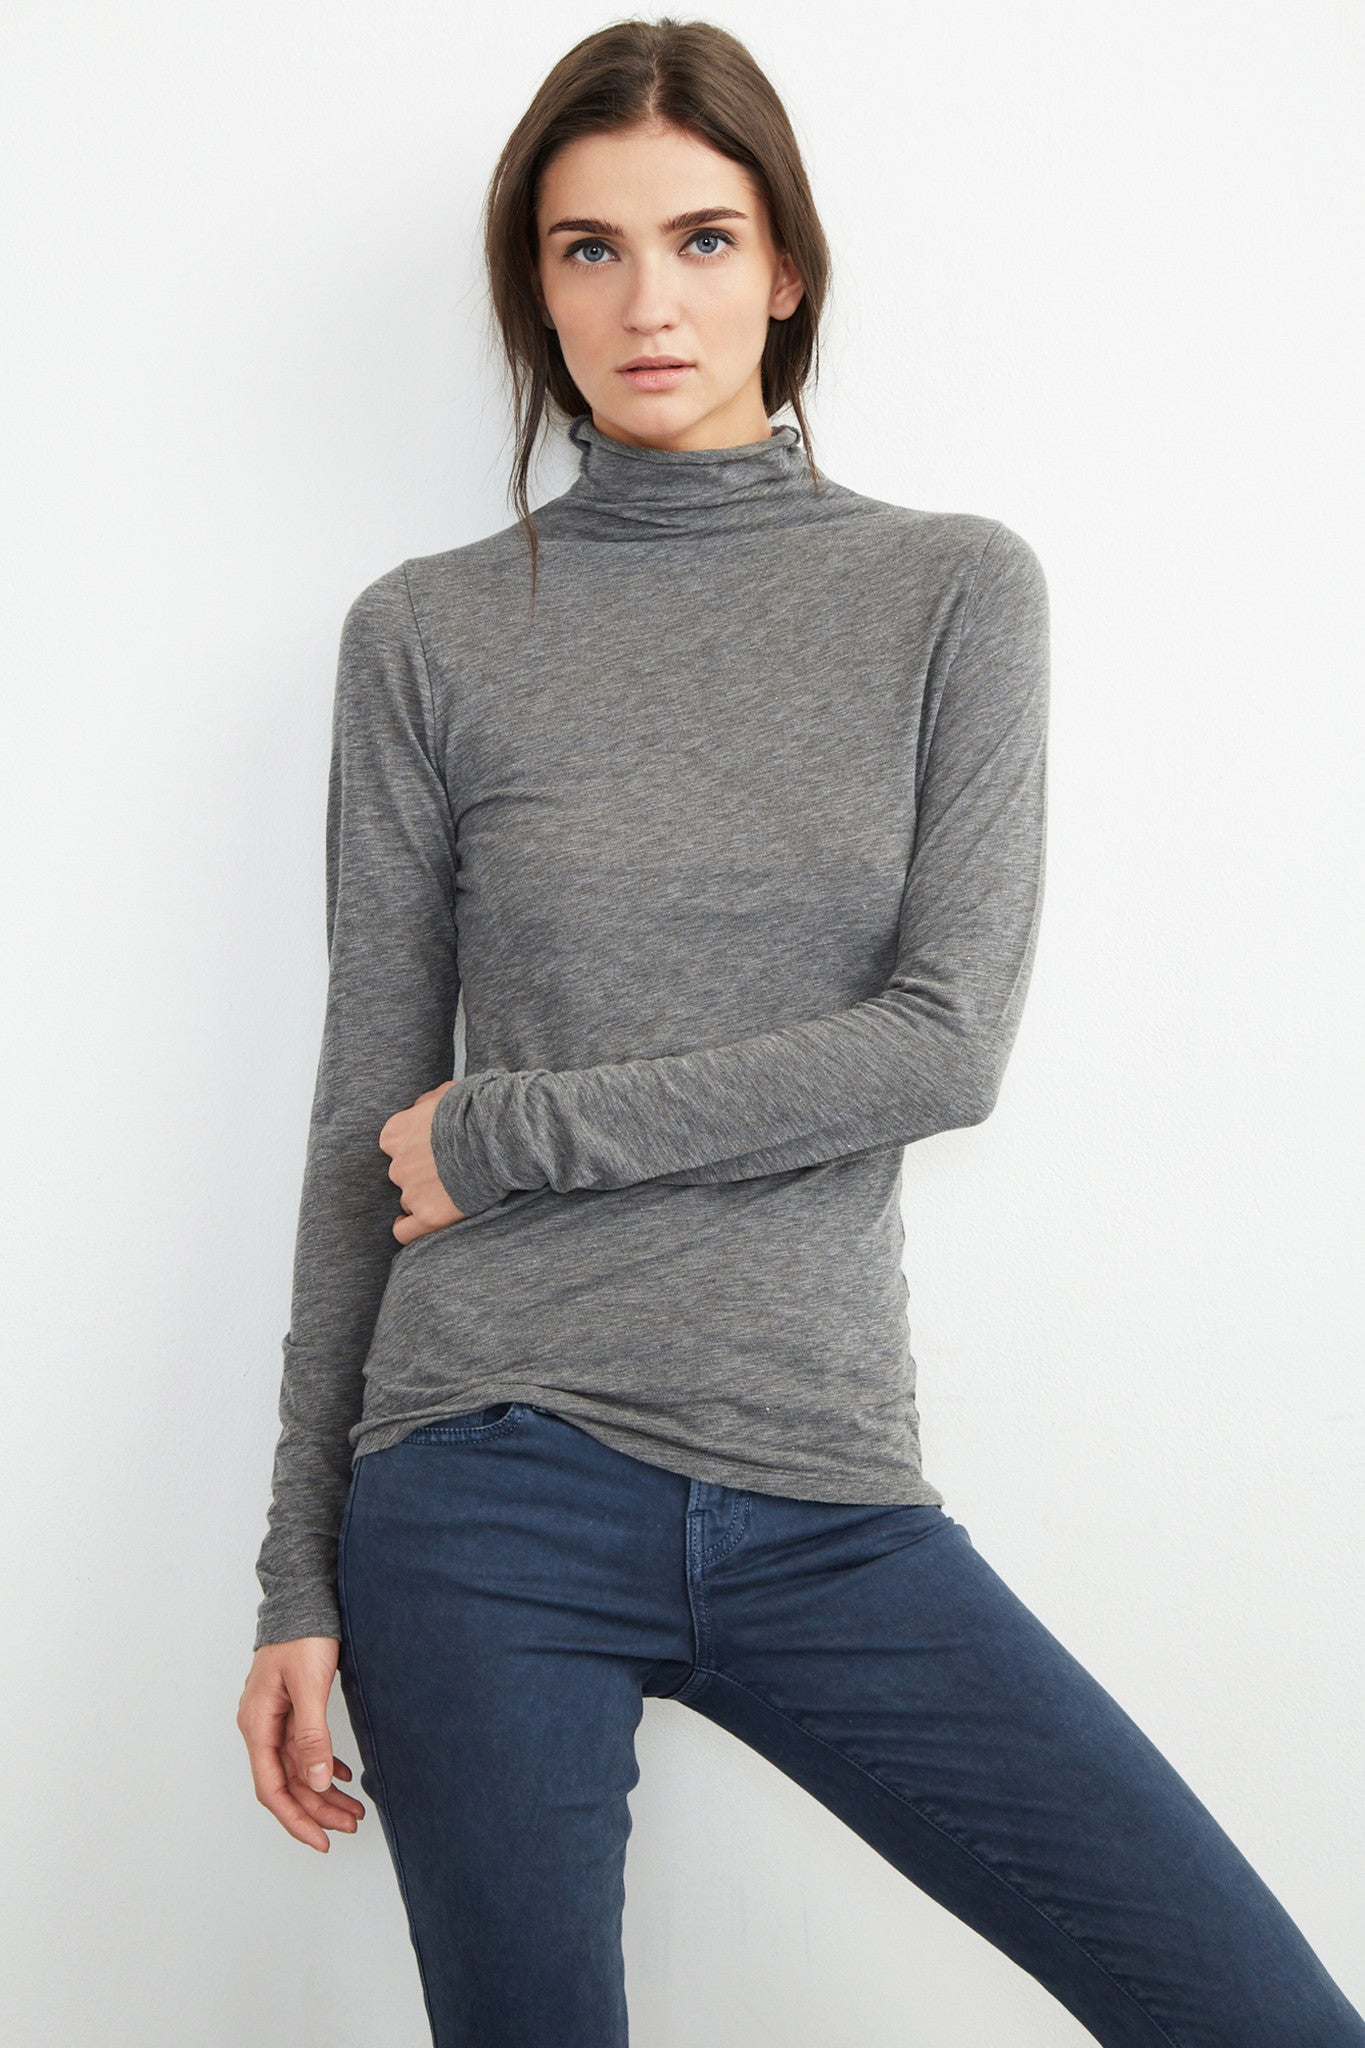 TALISIA GAUZY WHISPER TURTLE NECK TOP IN  CHARCOAL GREY